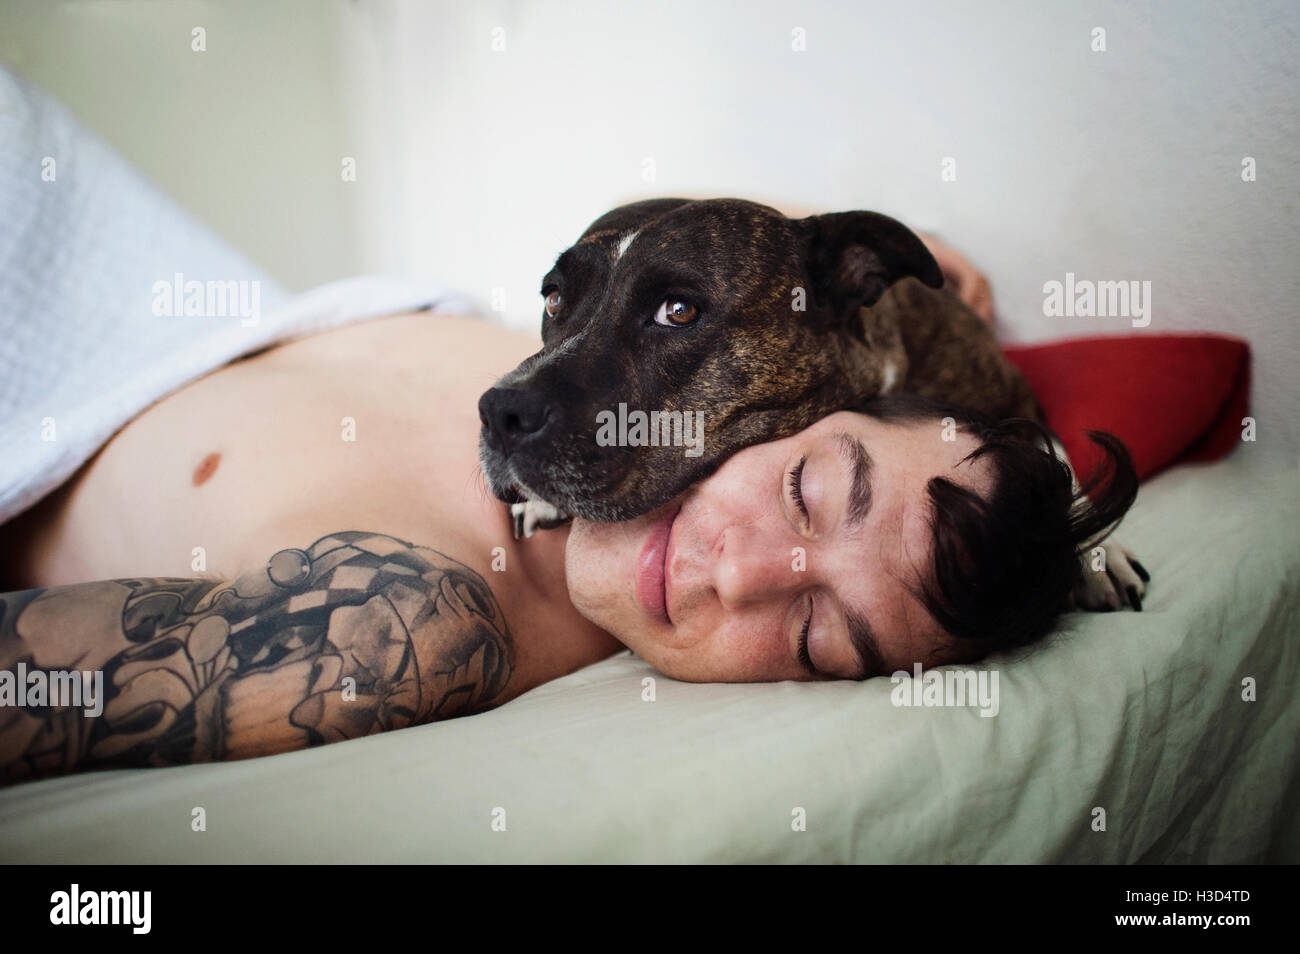 Portrait of dog lying on man's face while relaxing in bedroom - Stock Image